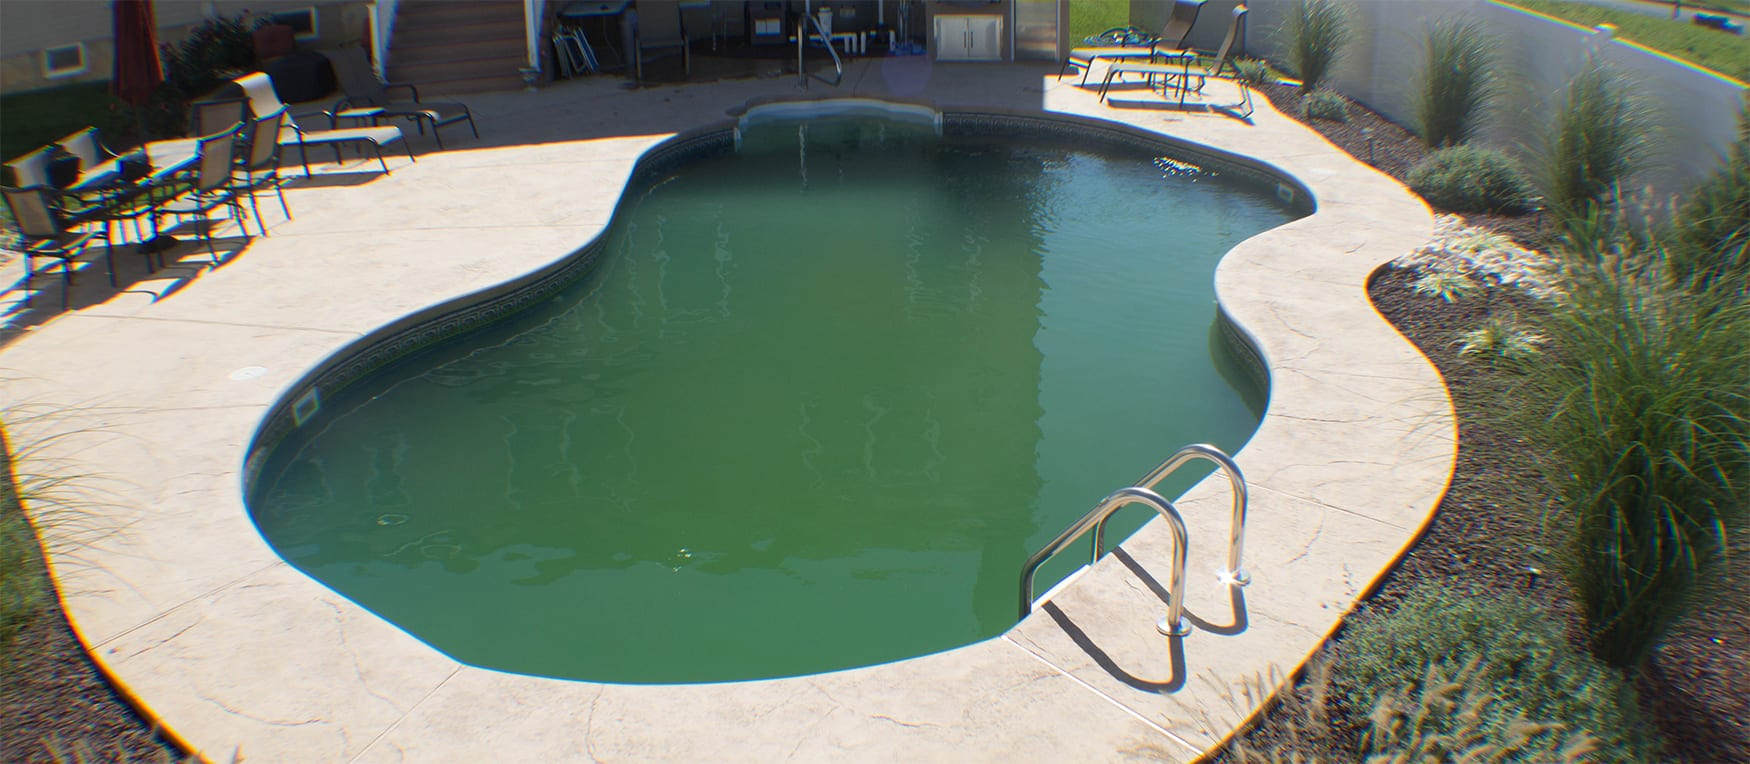 What Causes Algae Growth In My Pool Understerstanding